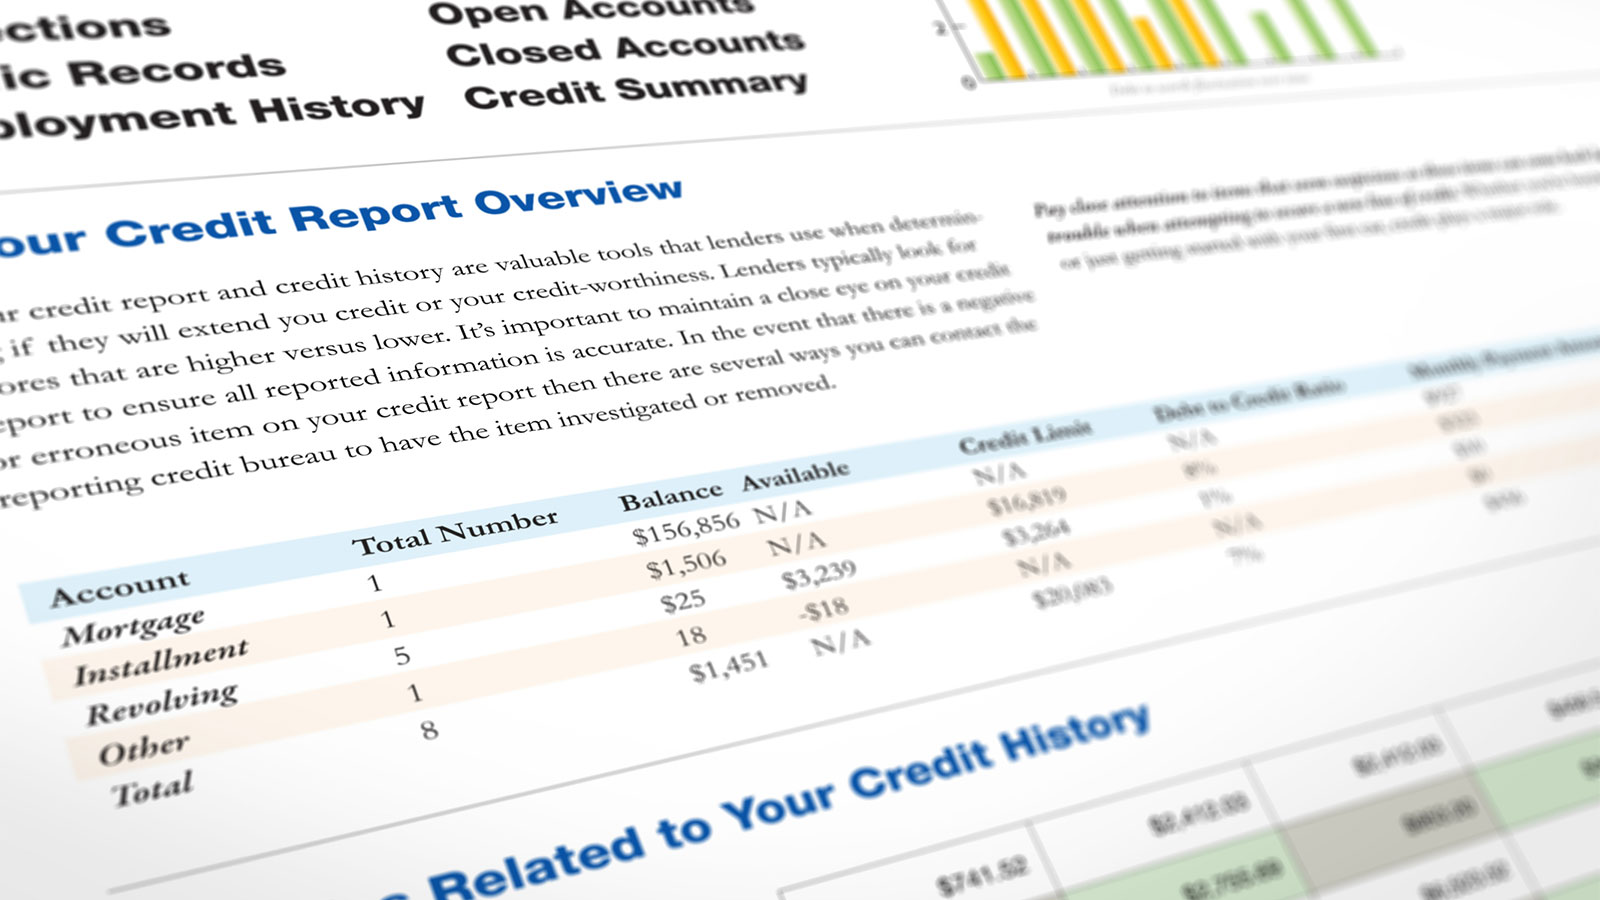 How Do You Get a Copy of Your Free Credit Report?